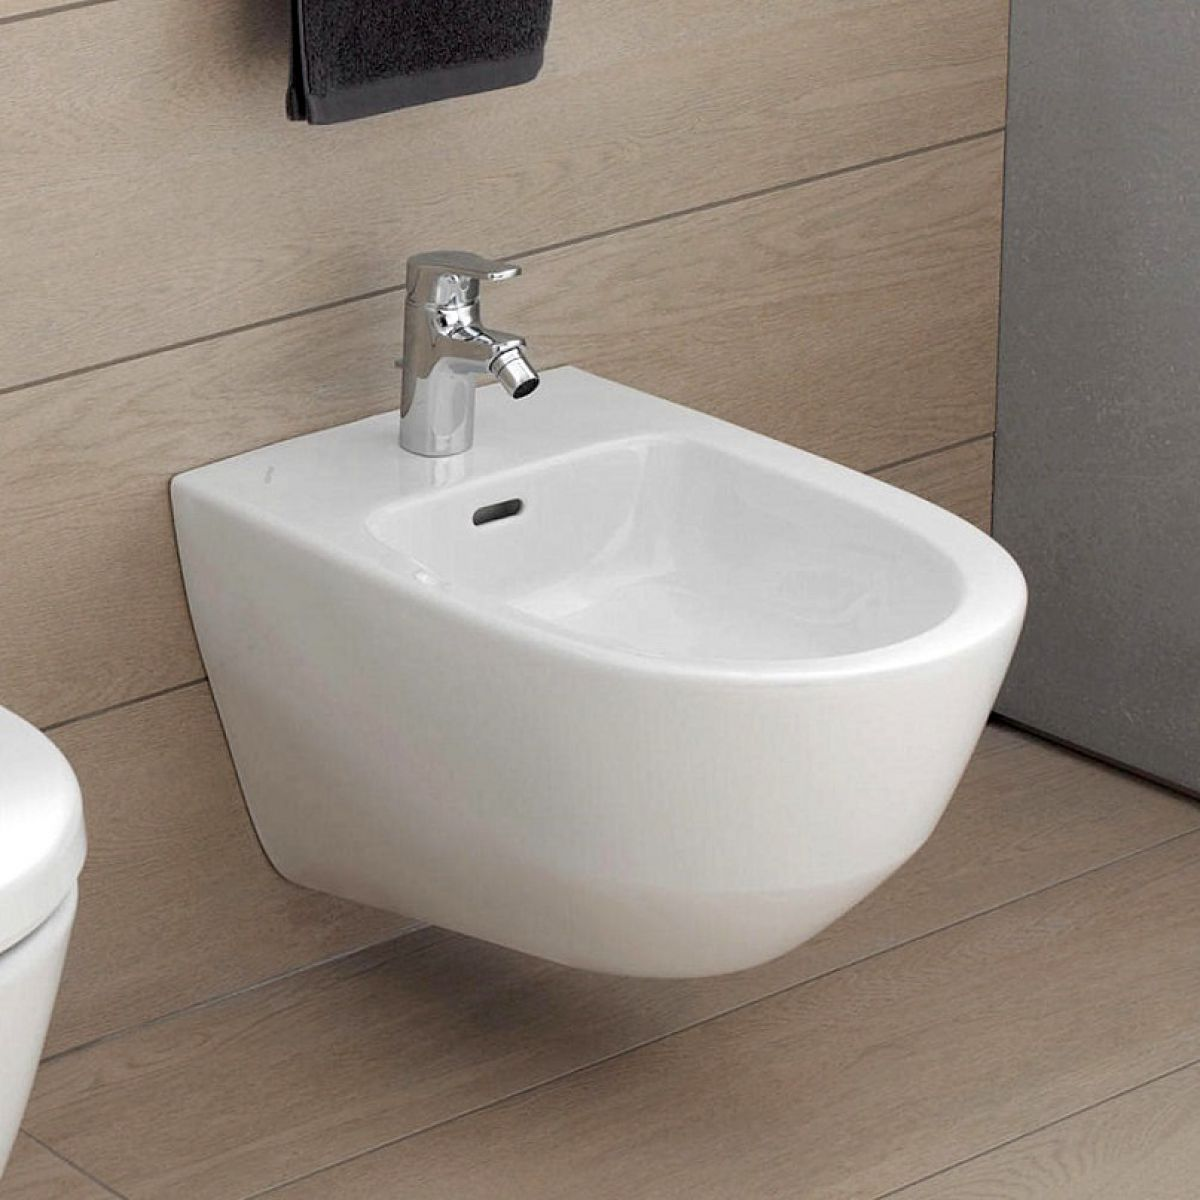 laufen pro new wall hung bidet uk bathrooms. Black Bedroom Furniture Sets. Home Design Ideas